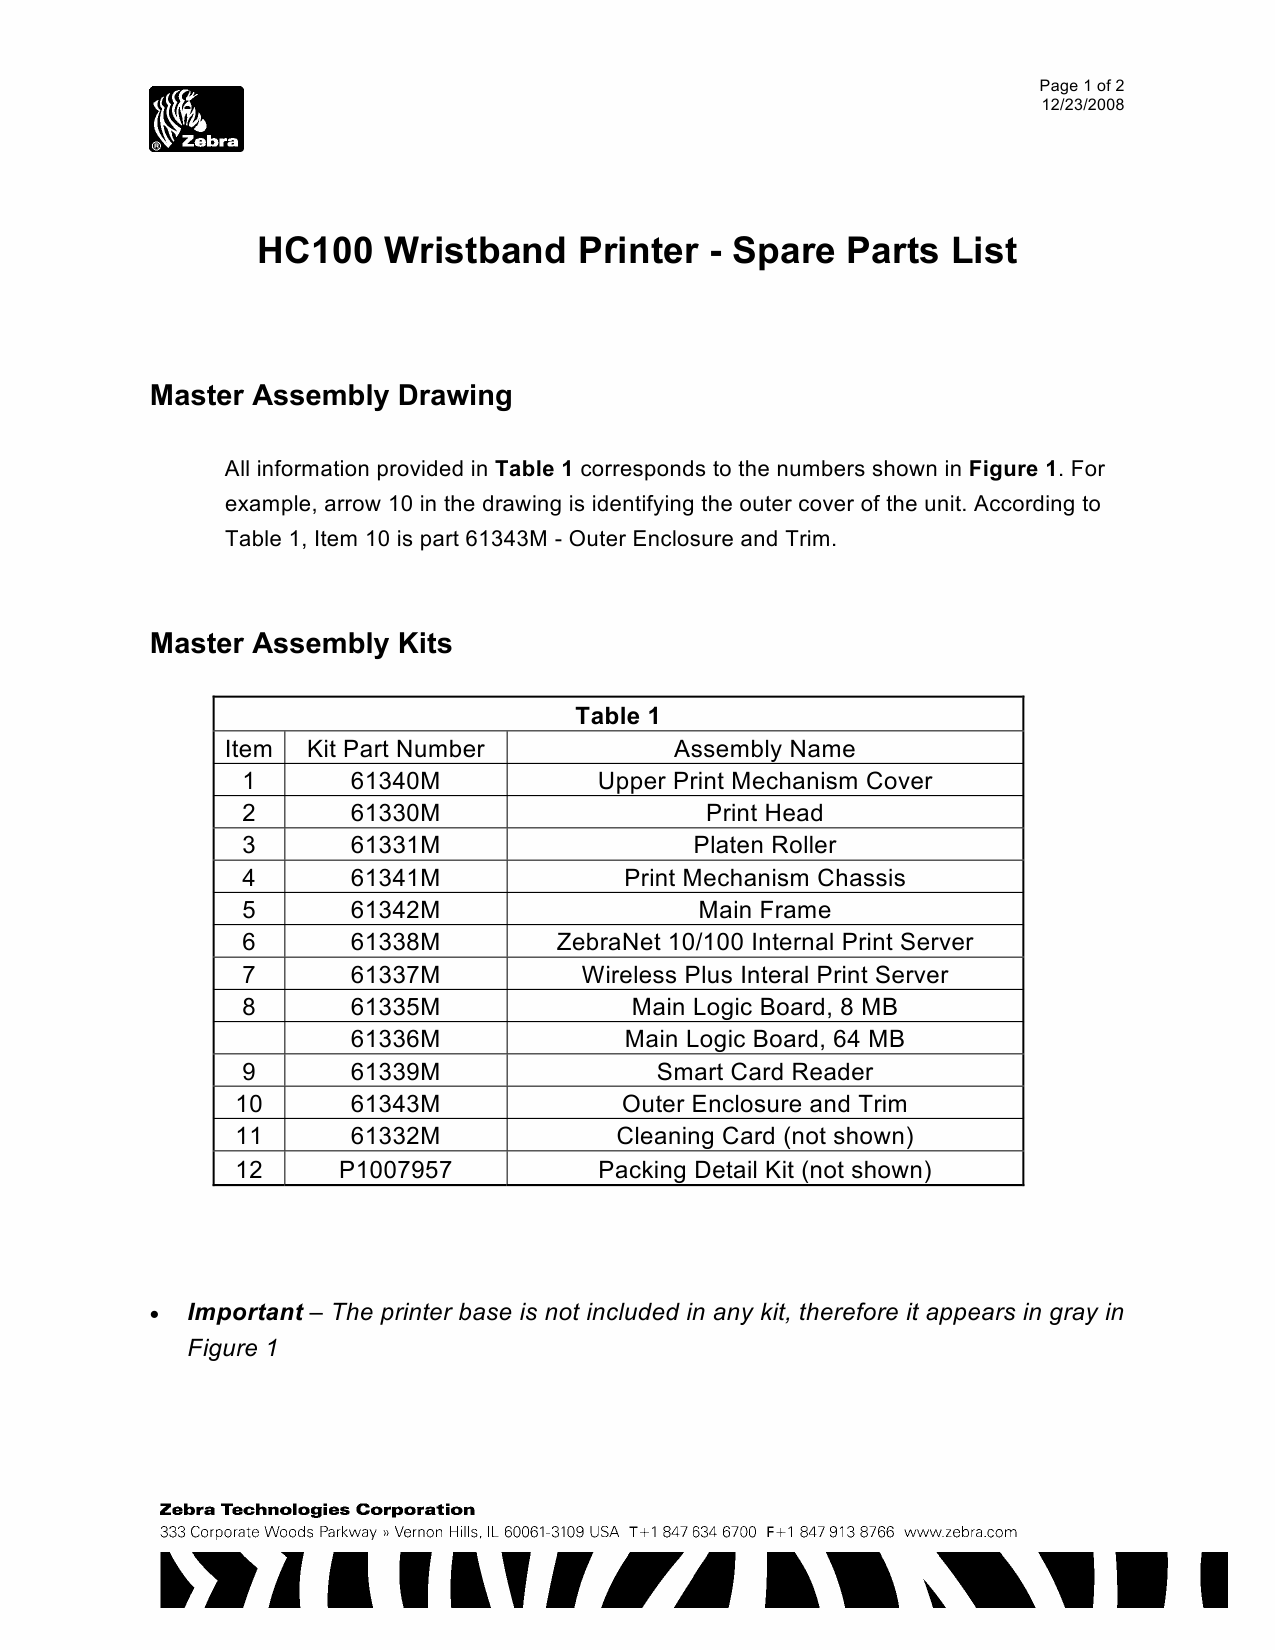 Zebra Label HC100 Parts List-1